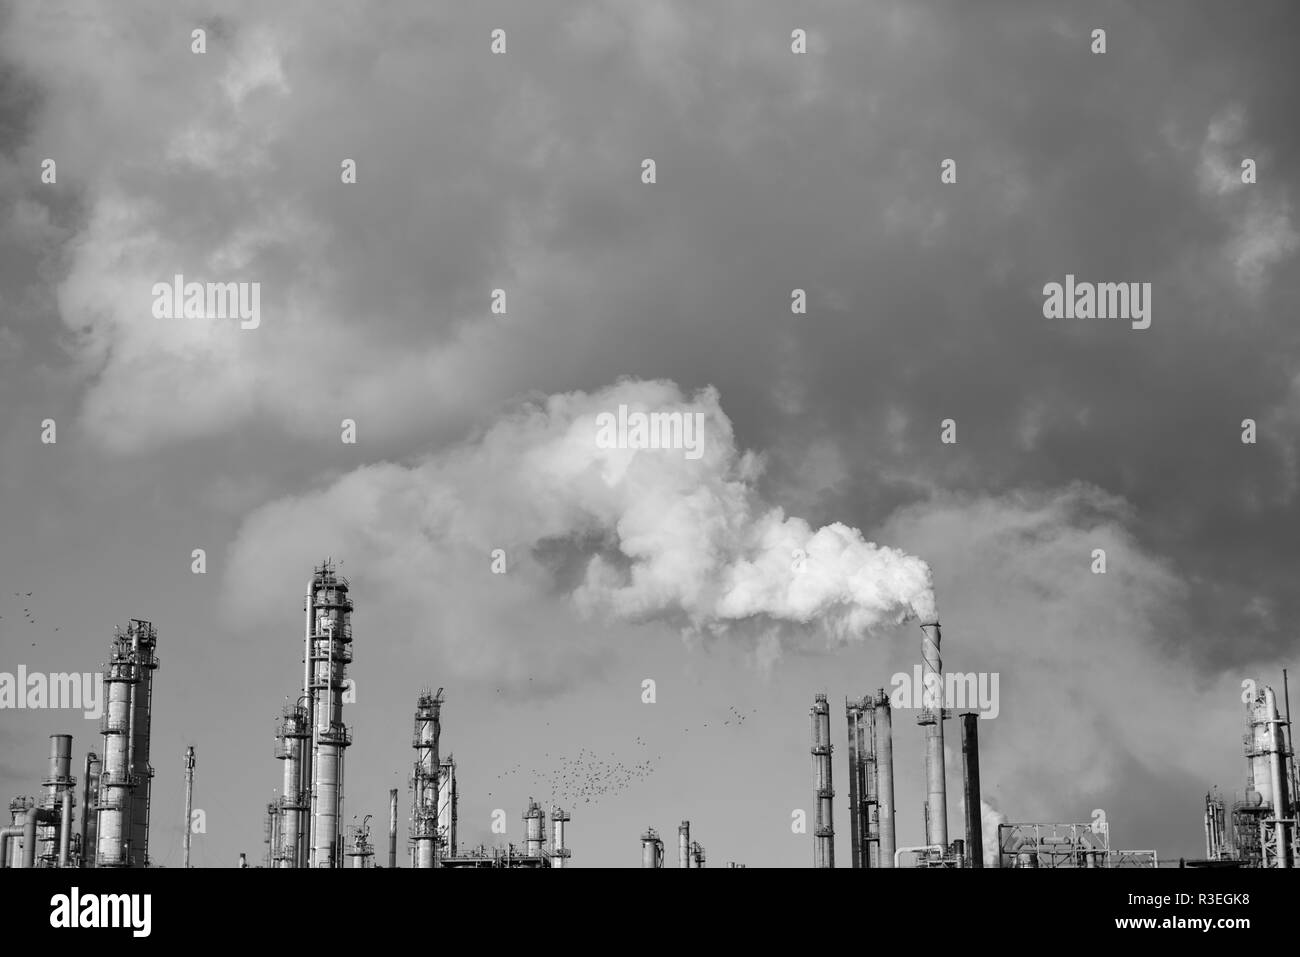 Plume of smoke rising from the tower of an industrial oil and gas refinery in Corpus Christi, Texas / USA. - Stock Image